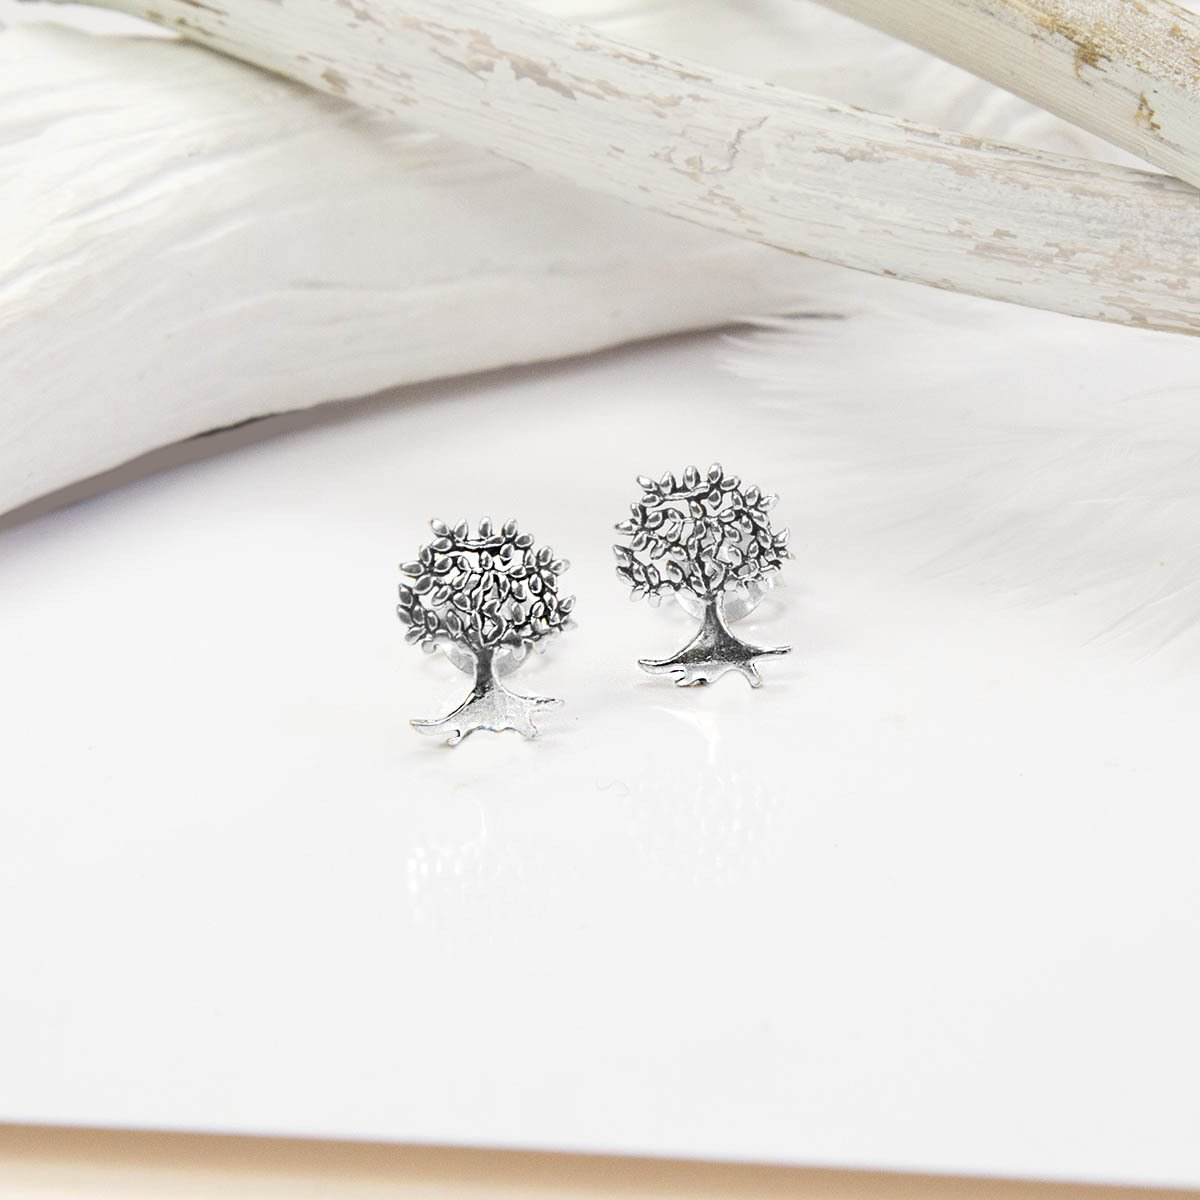 Silver Tree studs with white feathers and background